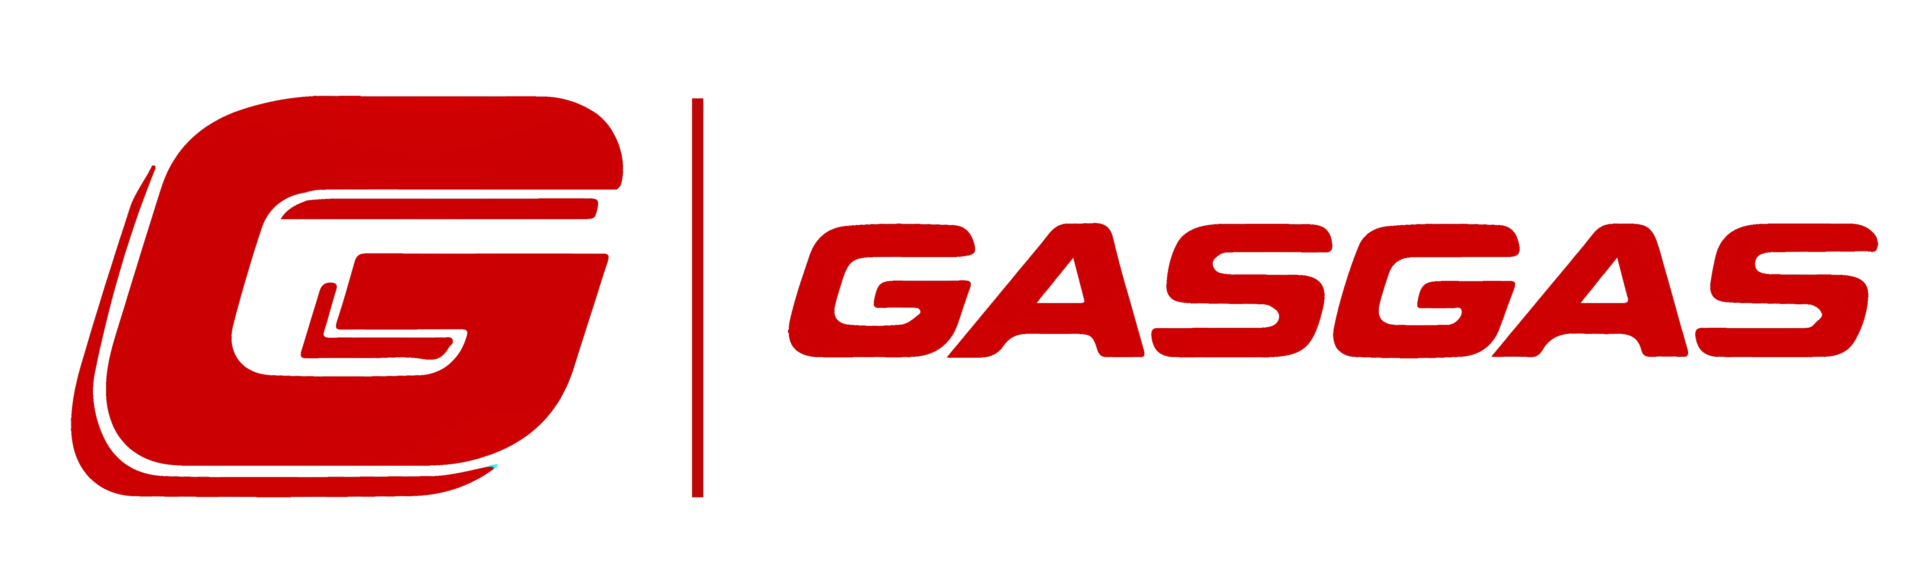 Gas Gas motorcycles logo png